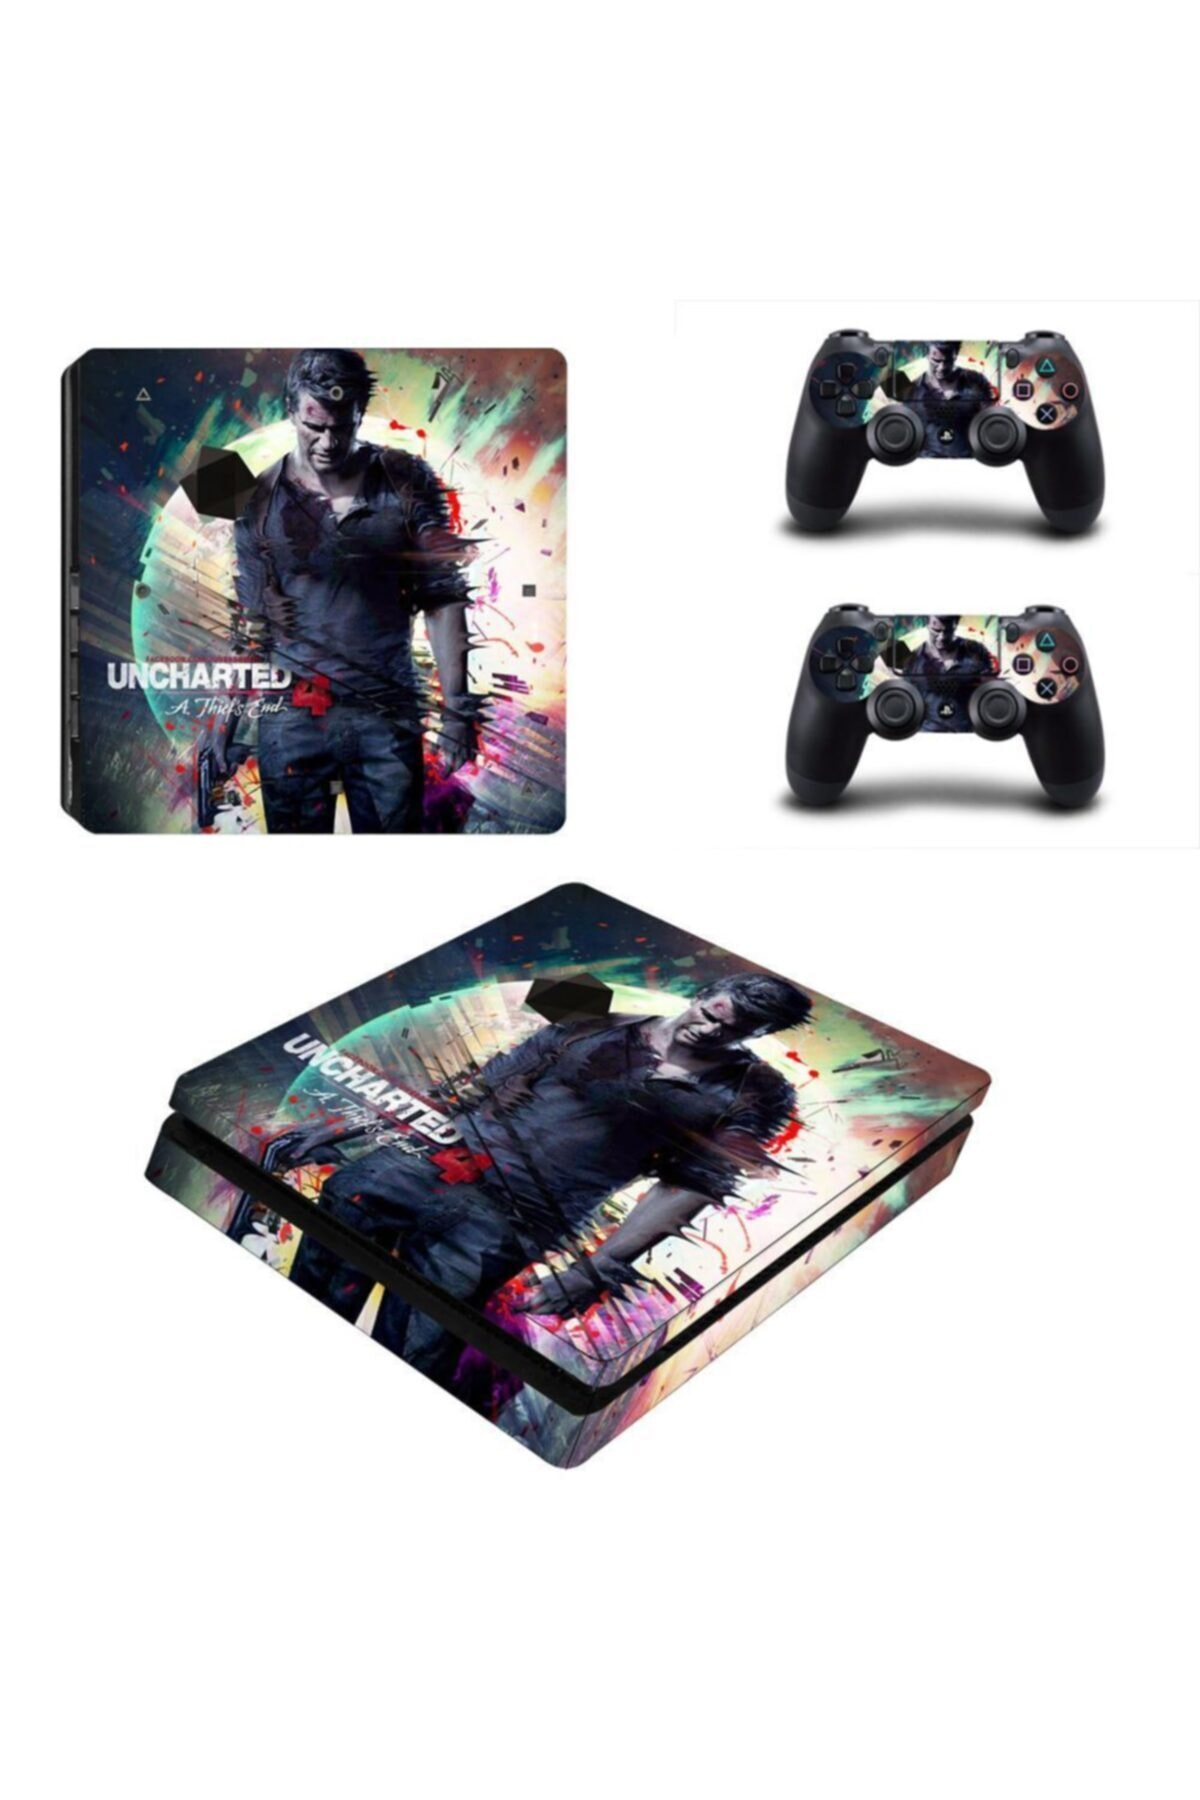 KT Decor Uncharted 4 Playstation 4 Slim Kasa Sticker Kaplama 1